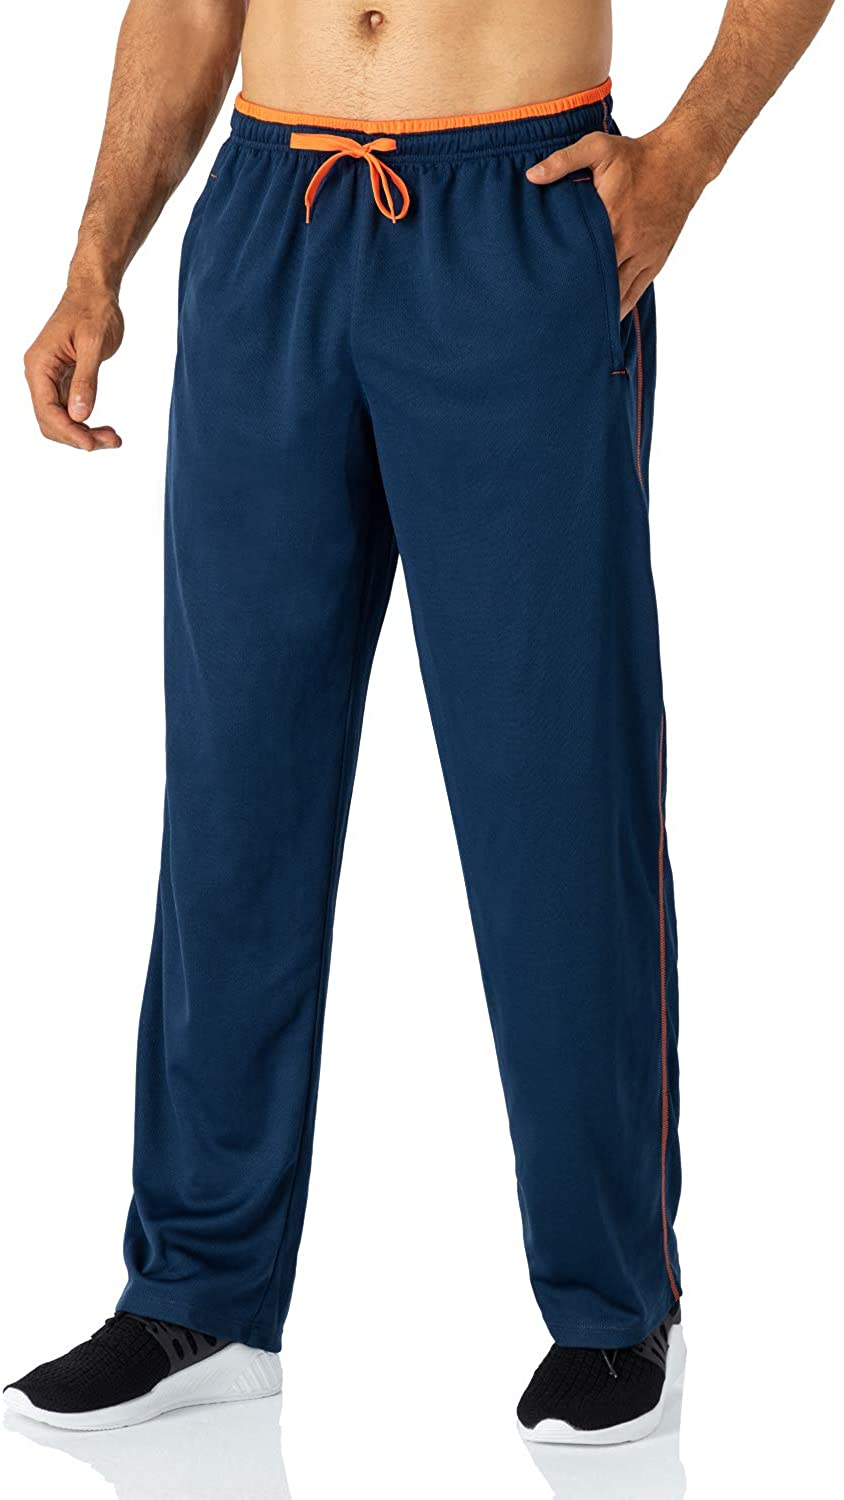 Butrends Men's Joggers Sweatpants Lightweight Running Trousers with Zip Pockets Elasticated Waist Sports Pants Open Bottoms Tracksuit